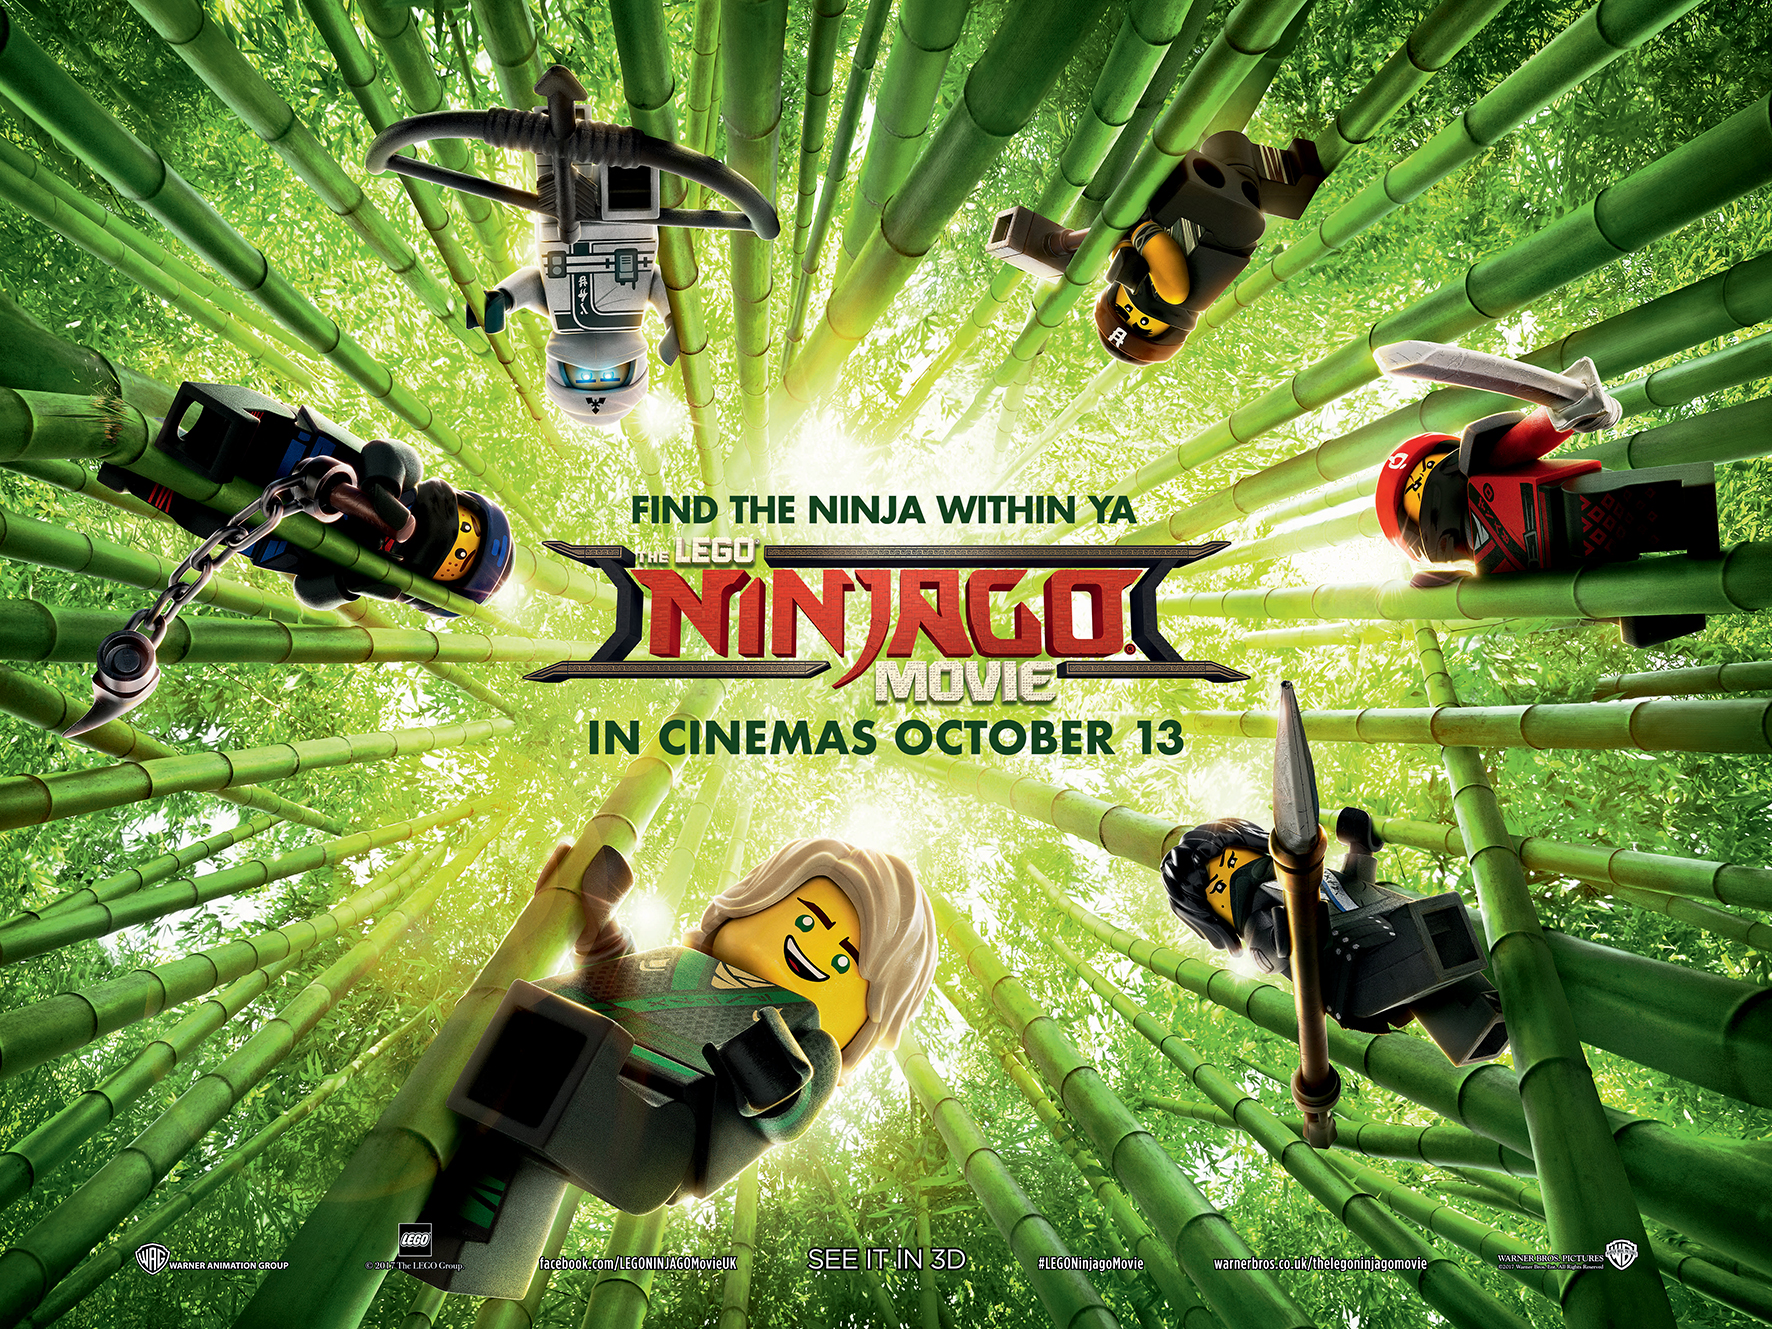 The Lego Ninjago Movie The Lego Ninjago Movie Review This Toy Ad Doesn T Quite Connect